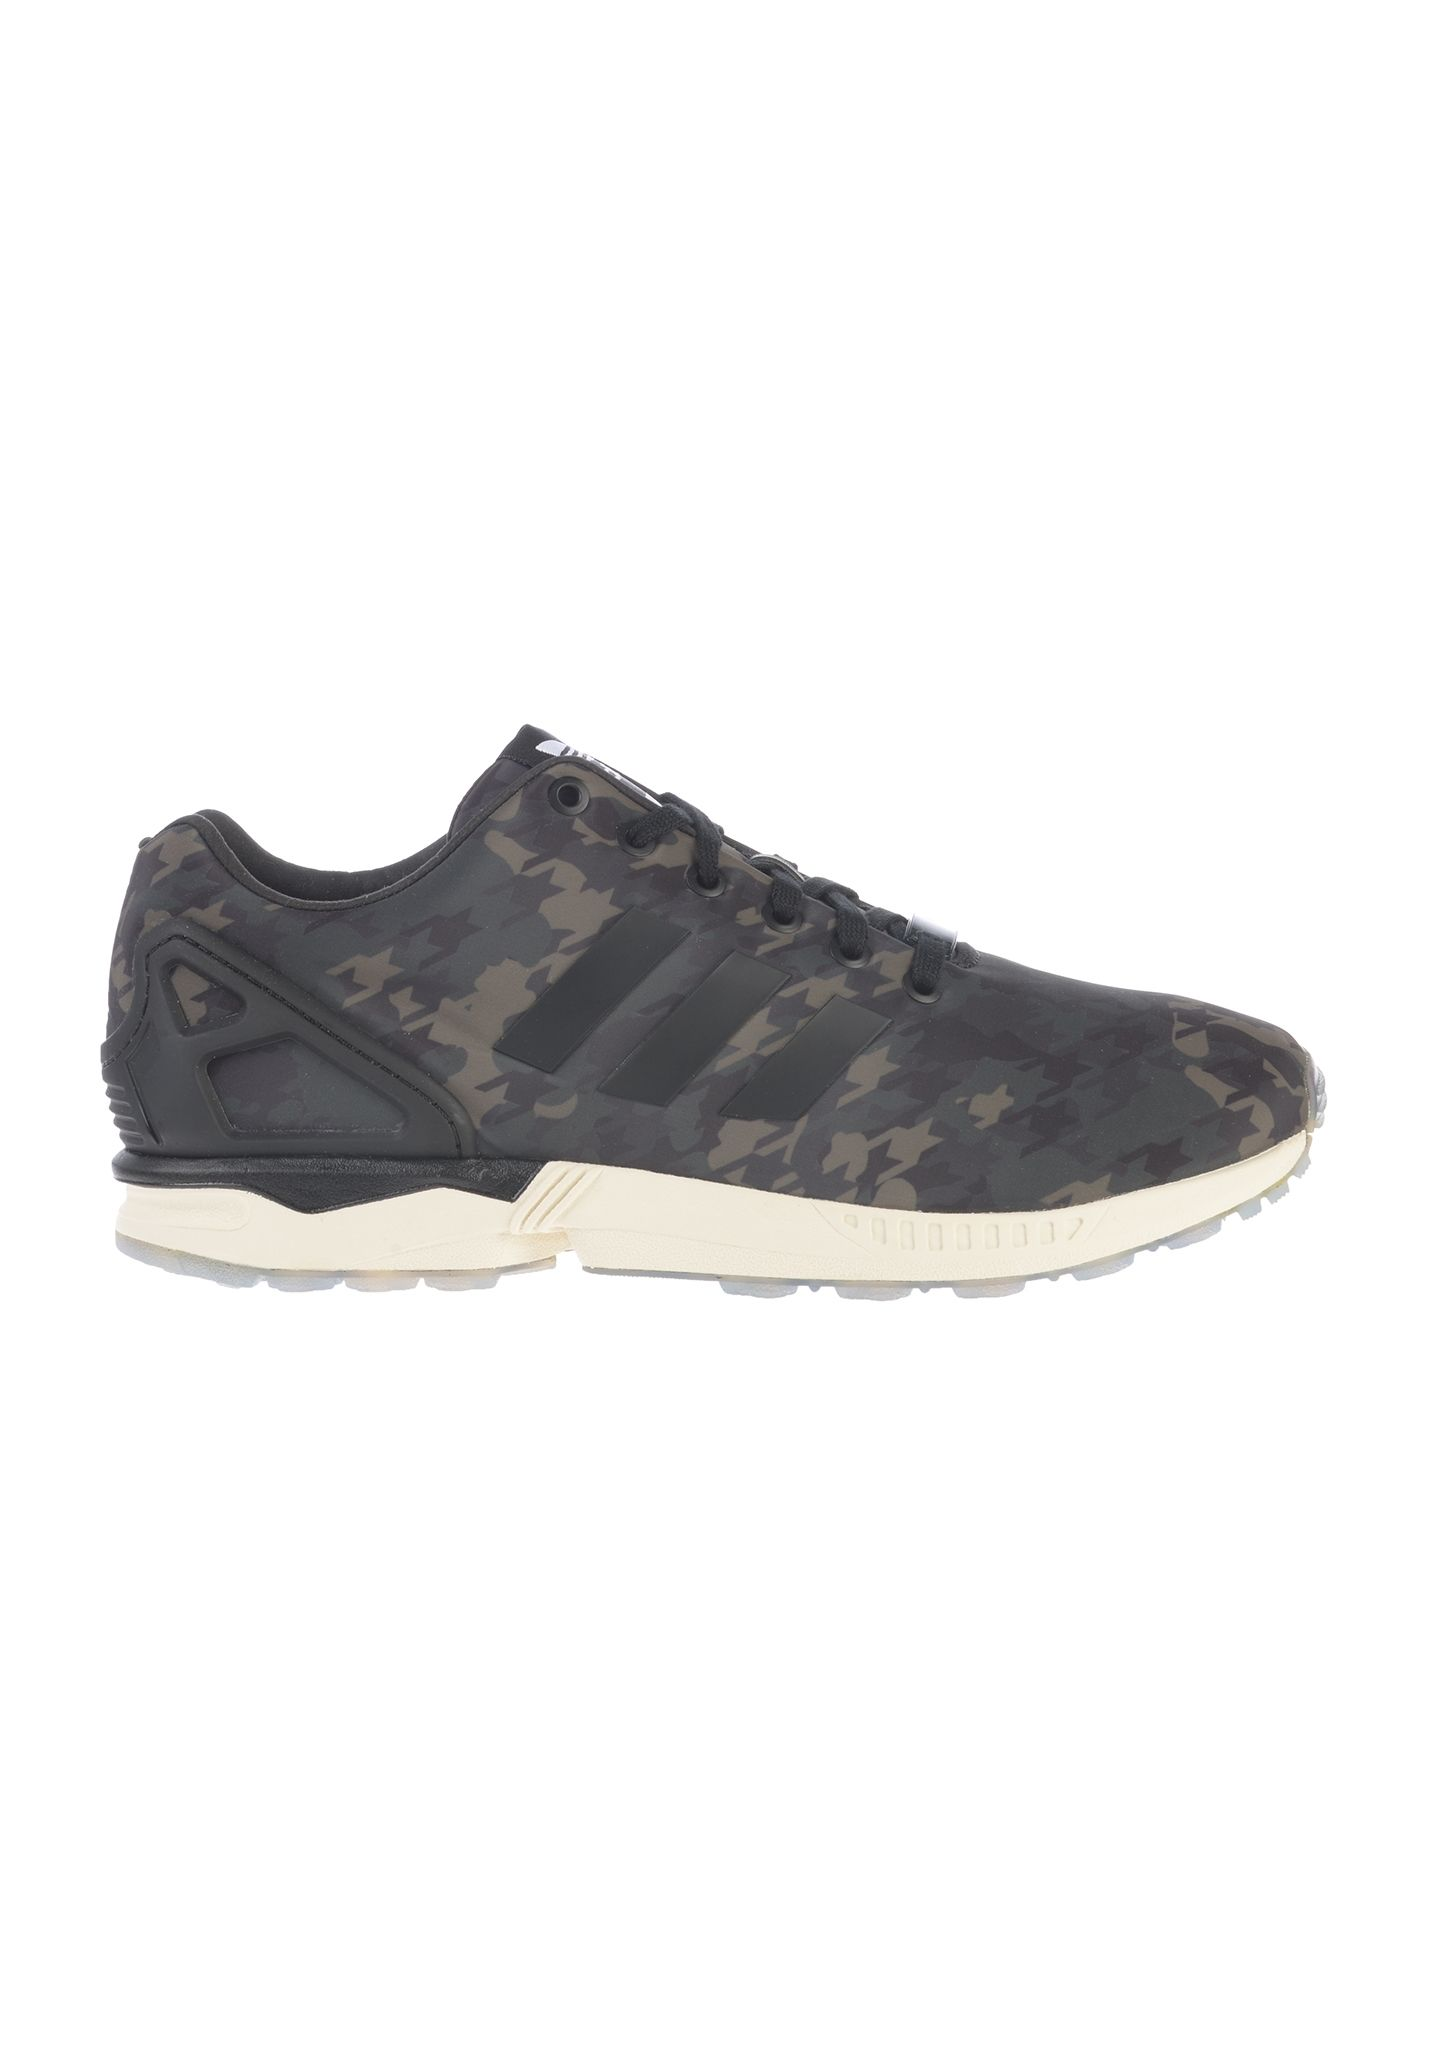 adidas zx flux camouflage herren die liga der. Black Bedroom Furniture Sets. Home Design Ideas